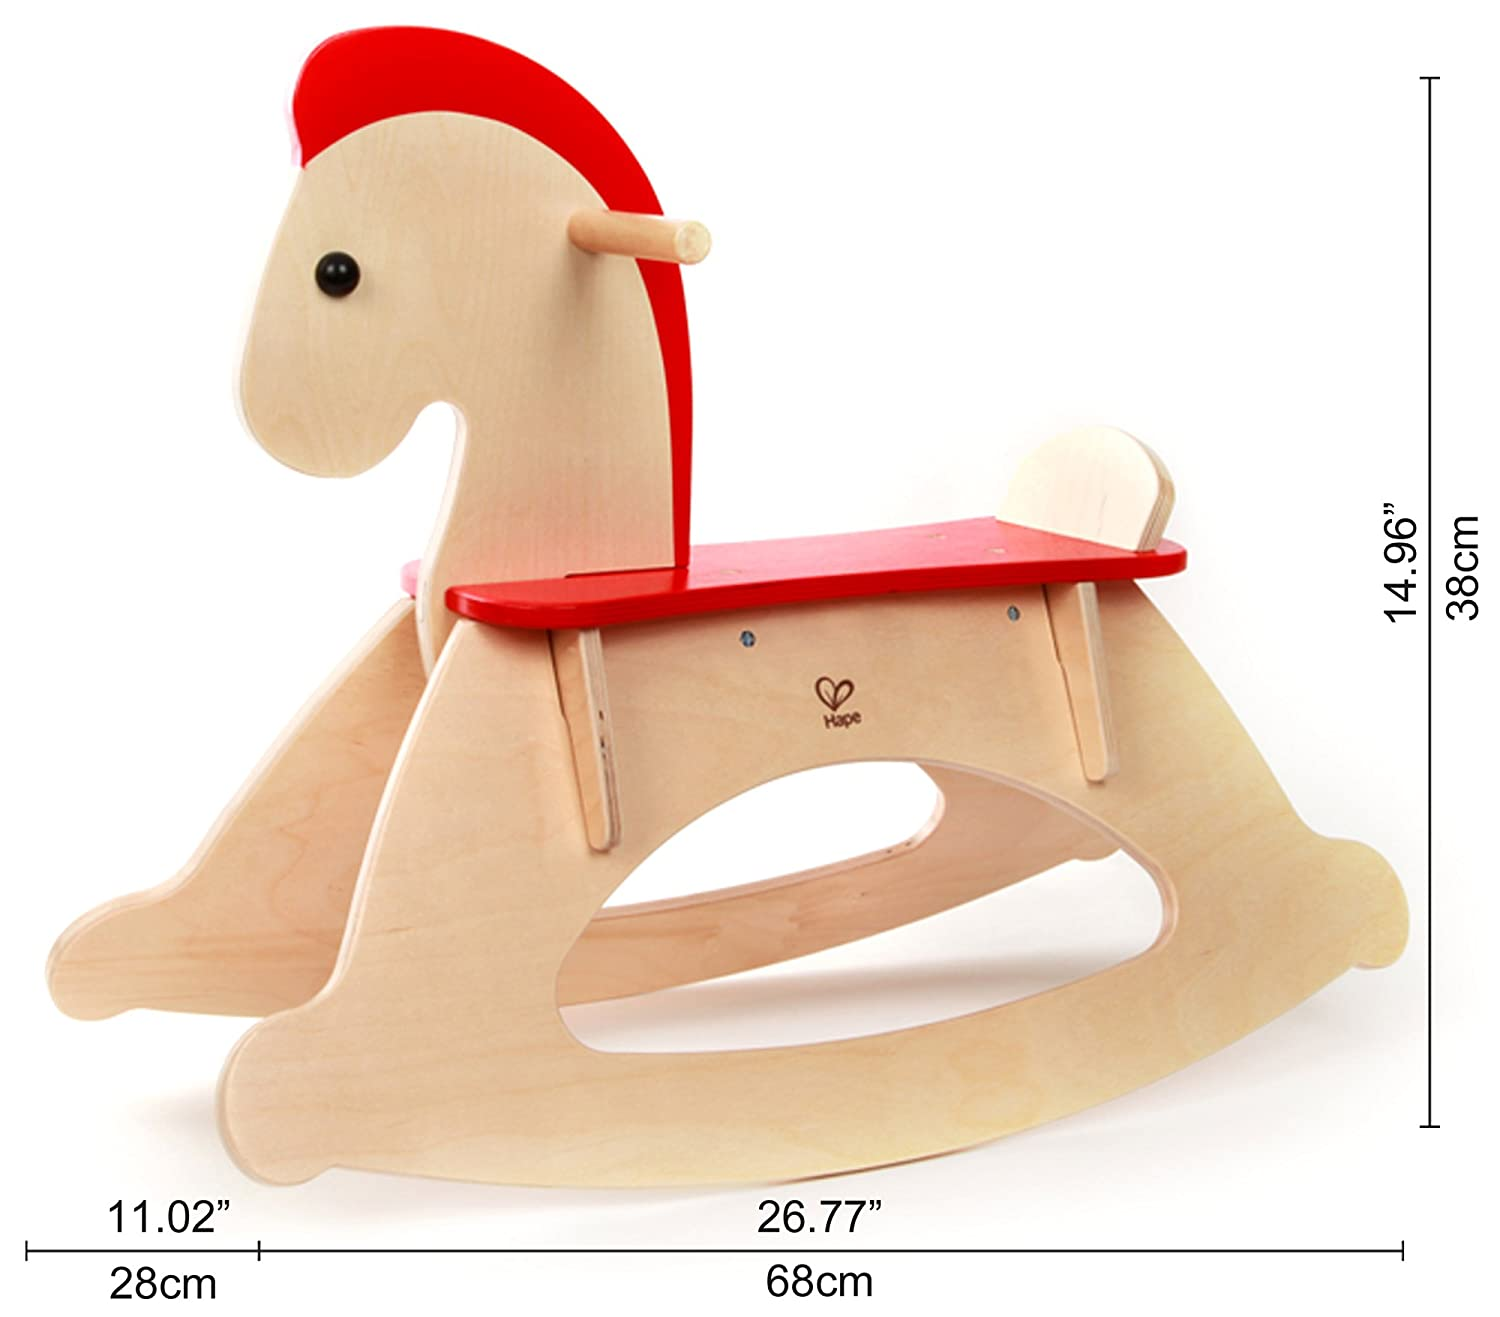 Hape Rock and Ride Kids Wooden Rocking Horse